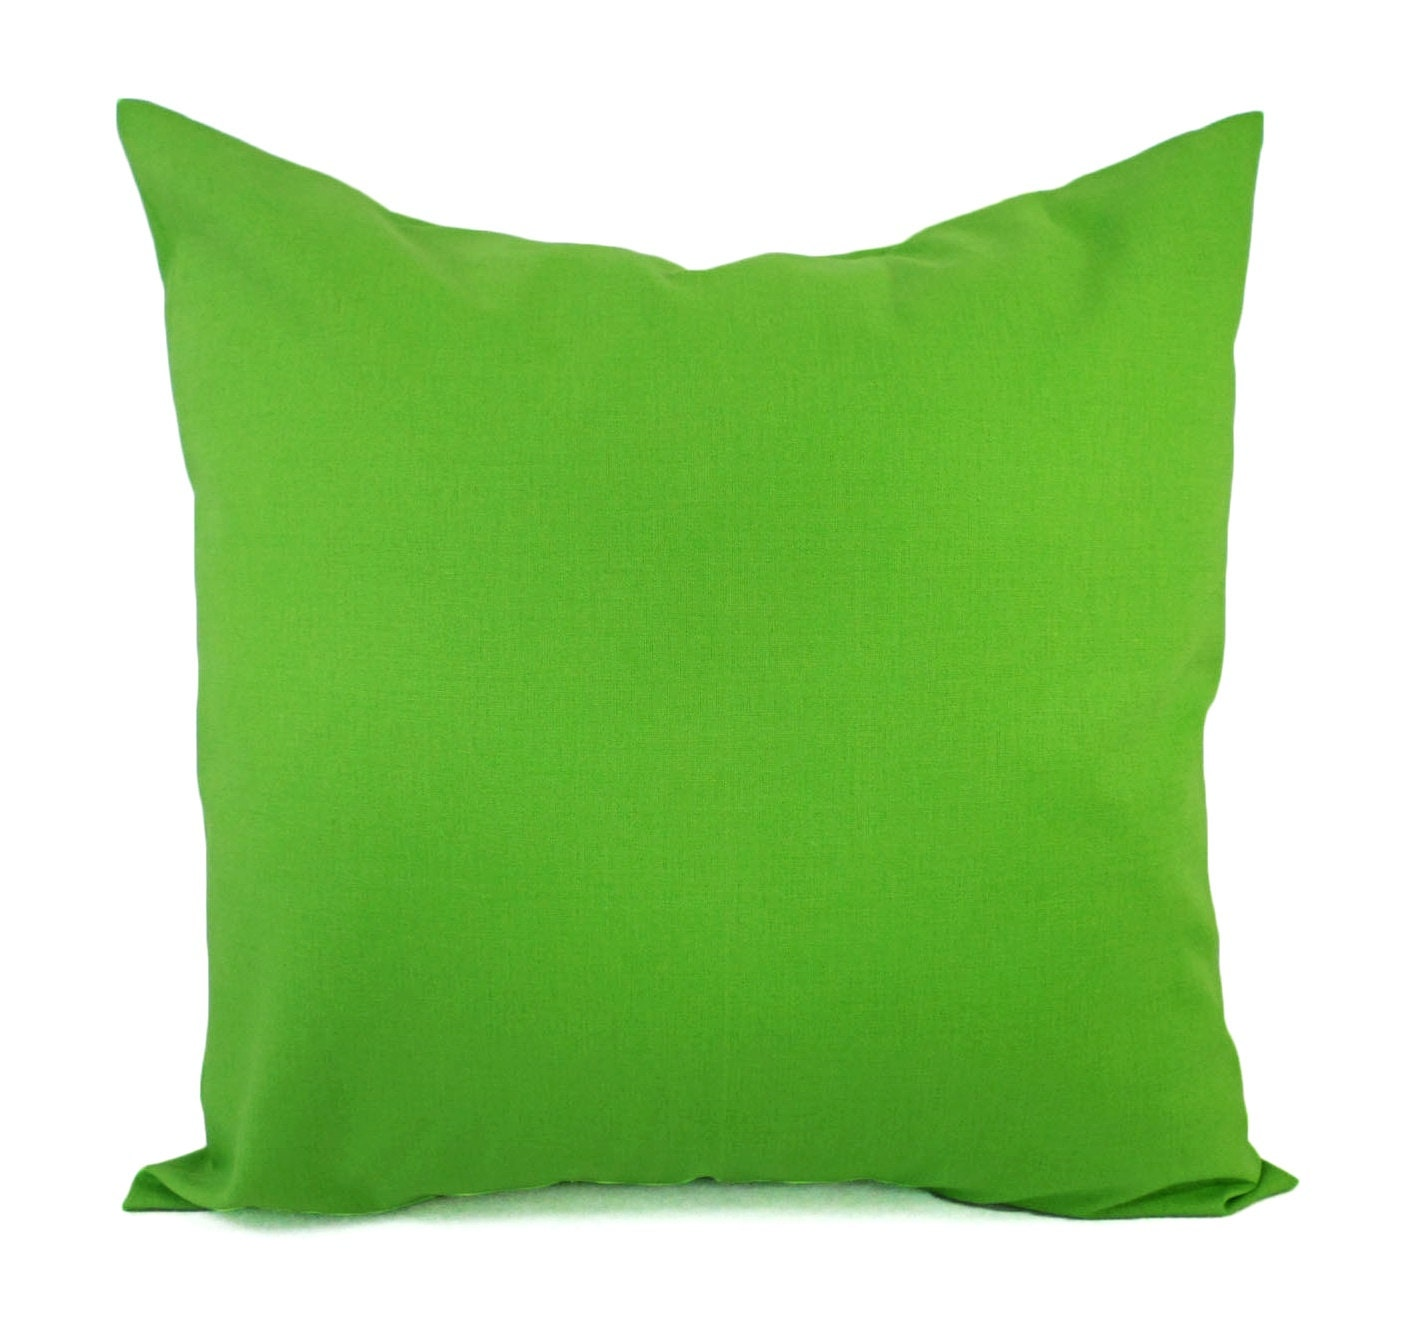 Solid Green Decorative Pillow Cover Green Pillow Cover